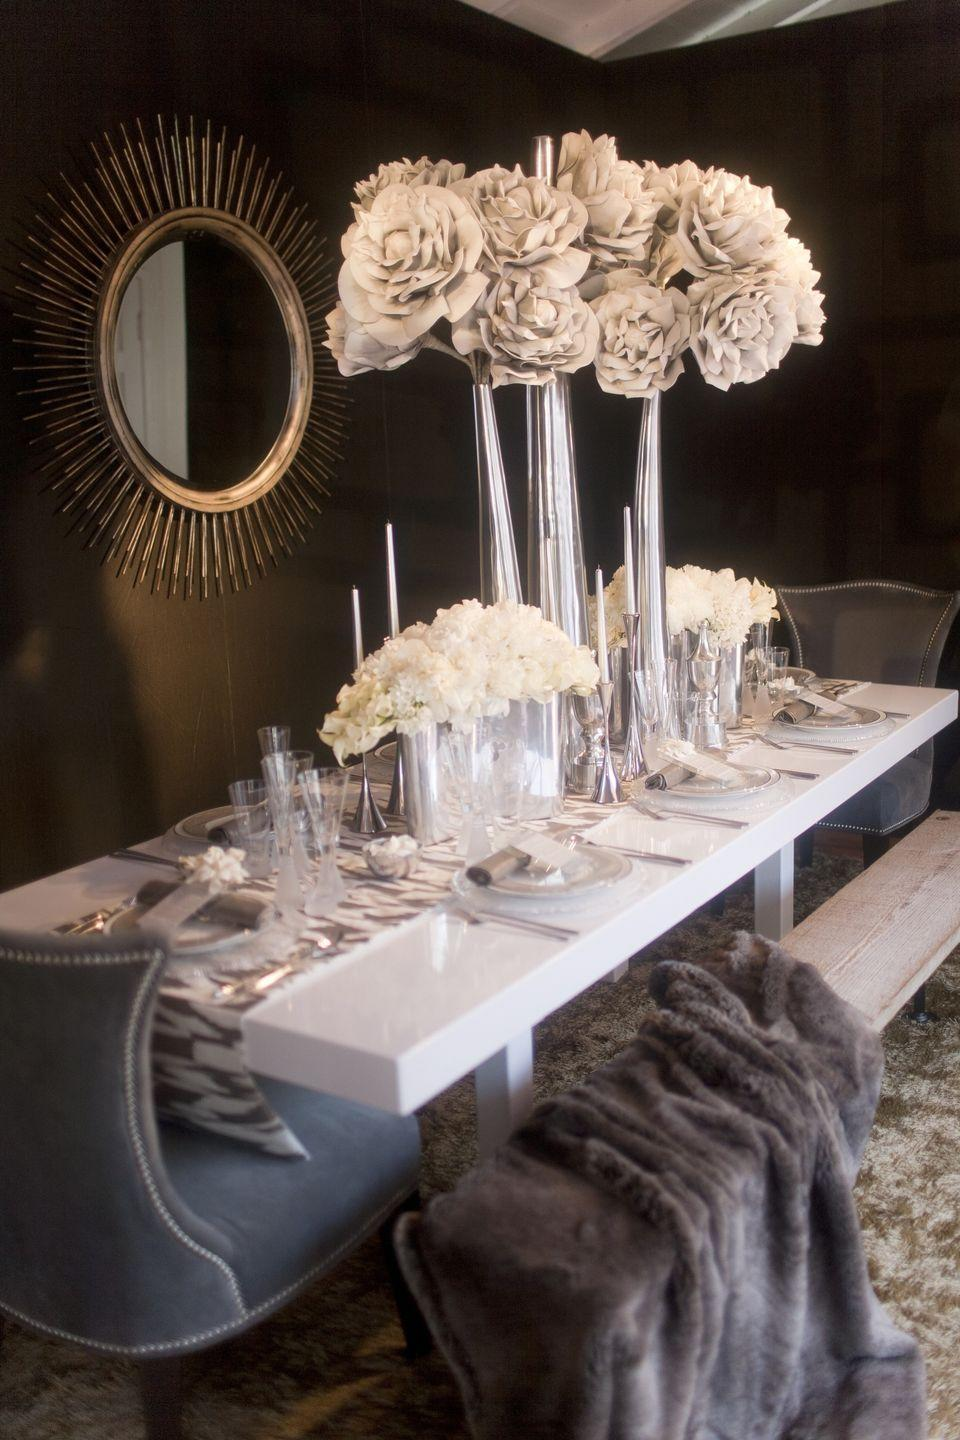 "<p>Tall centerpiece vases aren't just for weddings. Place large, white blooms in tall silver vases for a centerpiece that's frosted with the colors of a snowy winter. Side note: A furry throw on the chairs or benches will complement this design with a breath of warmth. </p><p><em>Via <a href=""http://www.sterlingsocial.com/"" rel=""nofollow noopener"" target=""_blank"" data-ylk=""slk:Sterling Social"" class=""link rapid-noclick-resp"">Sterling Social</a></em></p>"